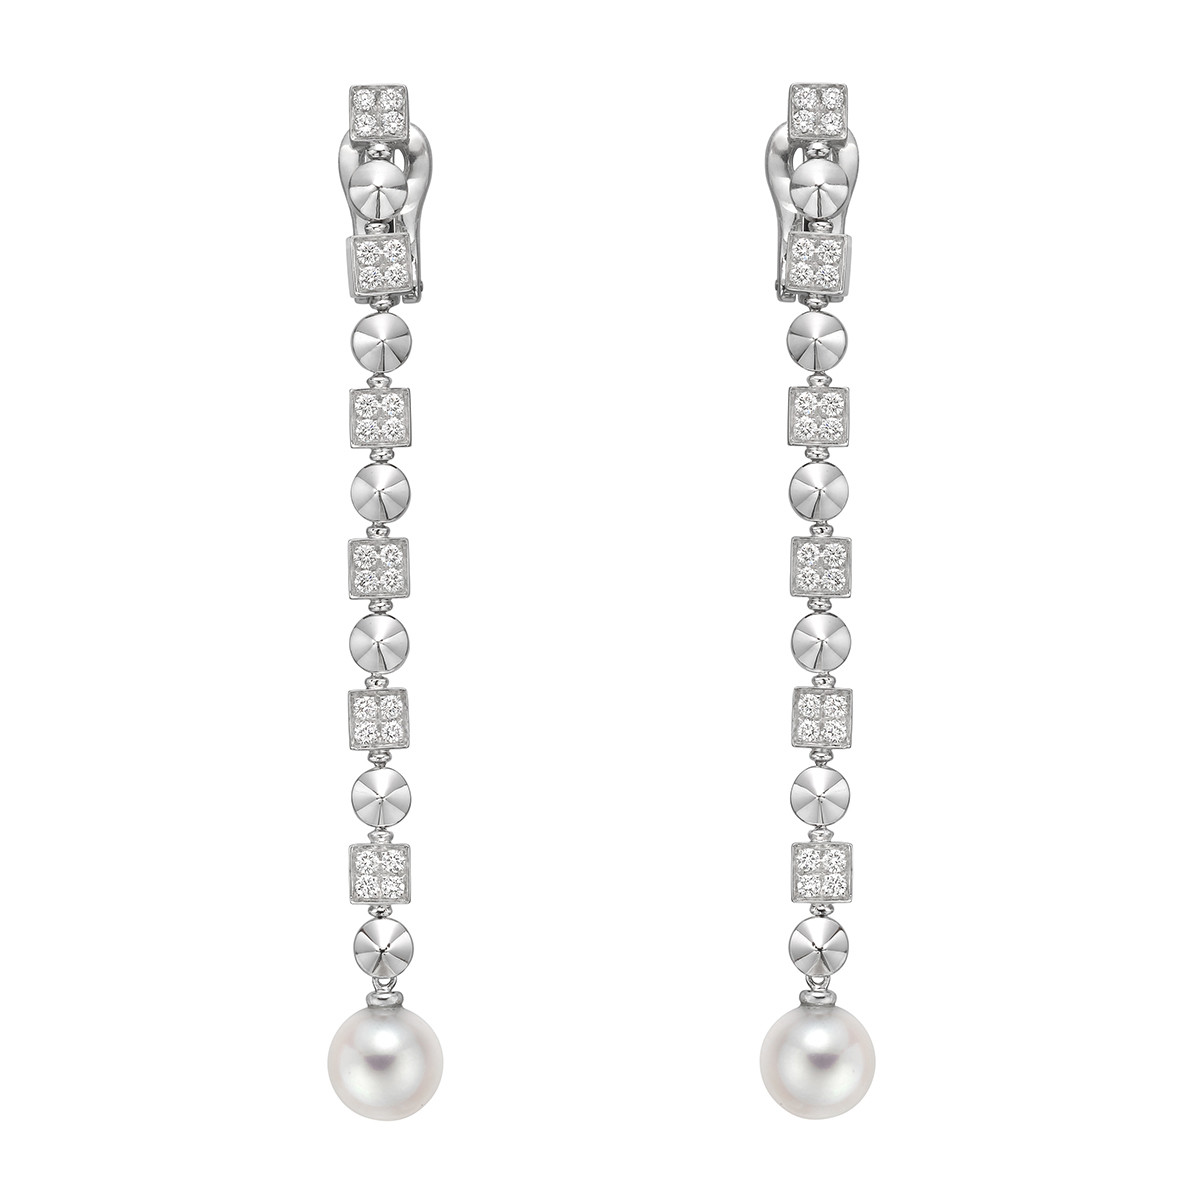 Lucea Long Drop Earrings Designed As A Diamond Set Chain Ending In An 8mm Round White Cultured Pearl 18k Gold Signed Bvlgari